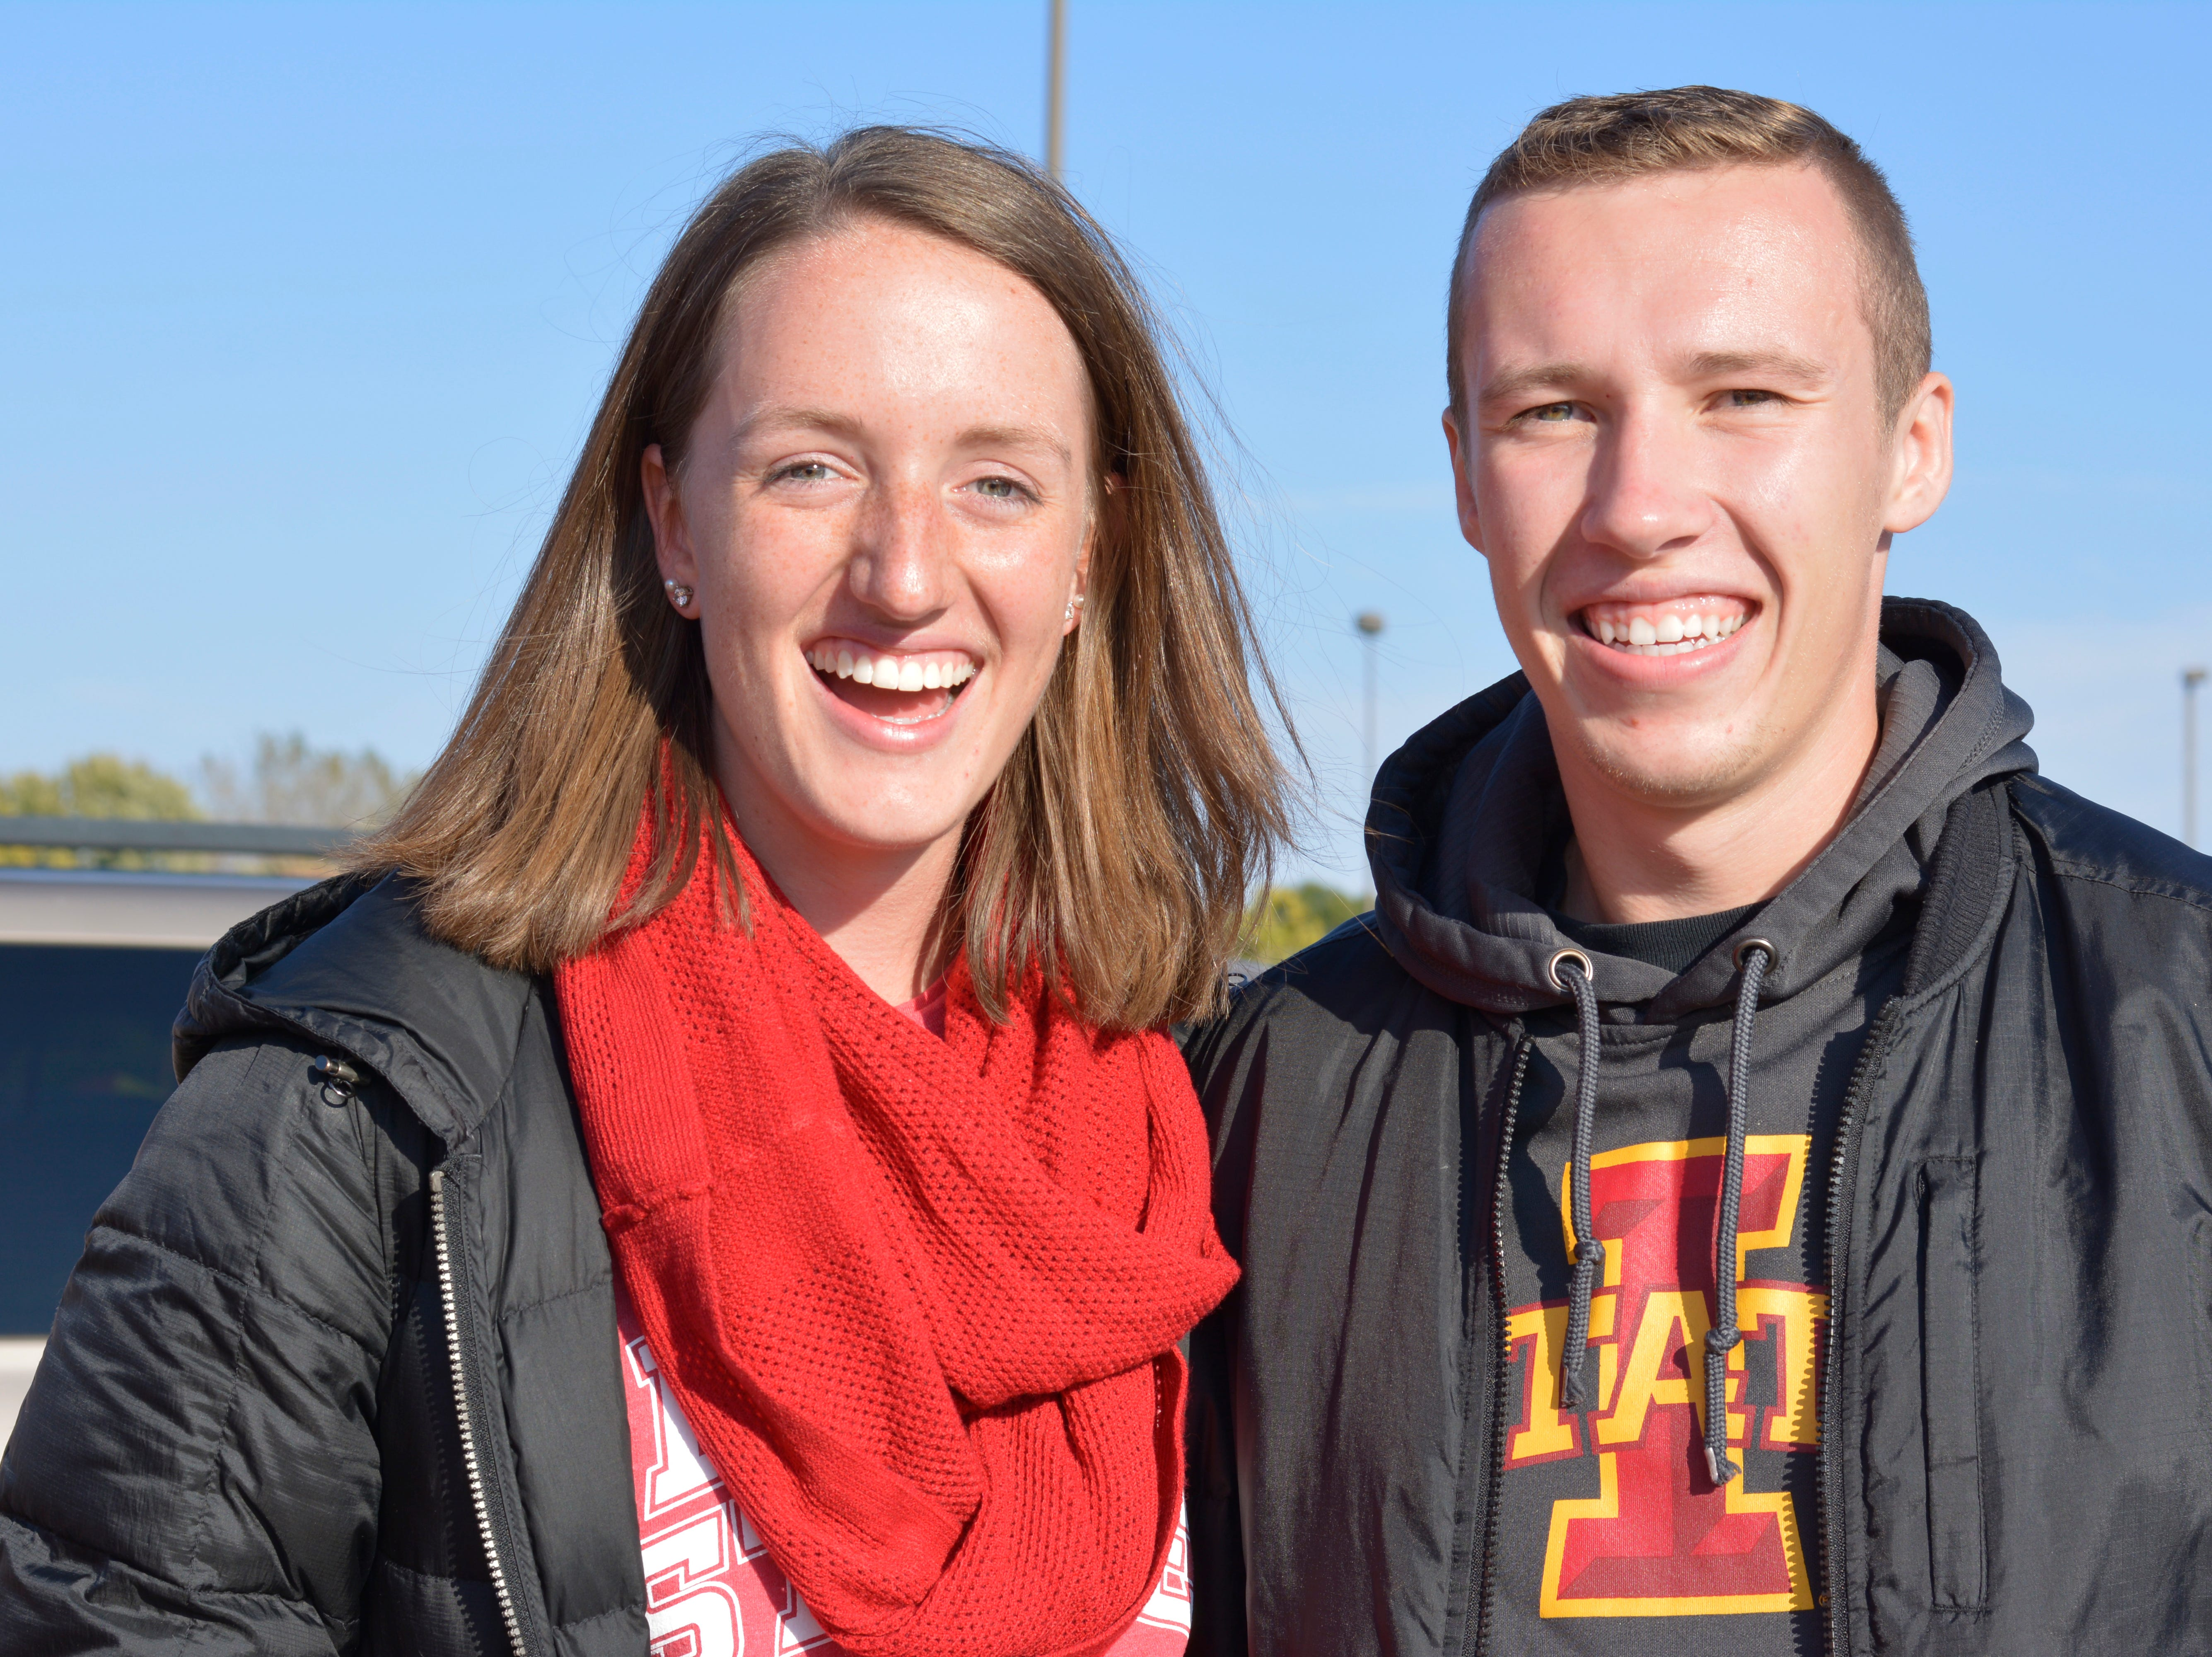 Emily Seibel and Isaac Hoffman before the Iowa State University football game against West Virginia in Ames on Oct. 13.